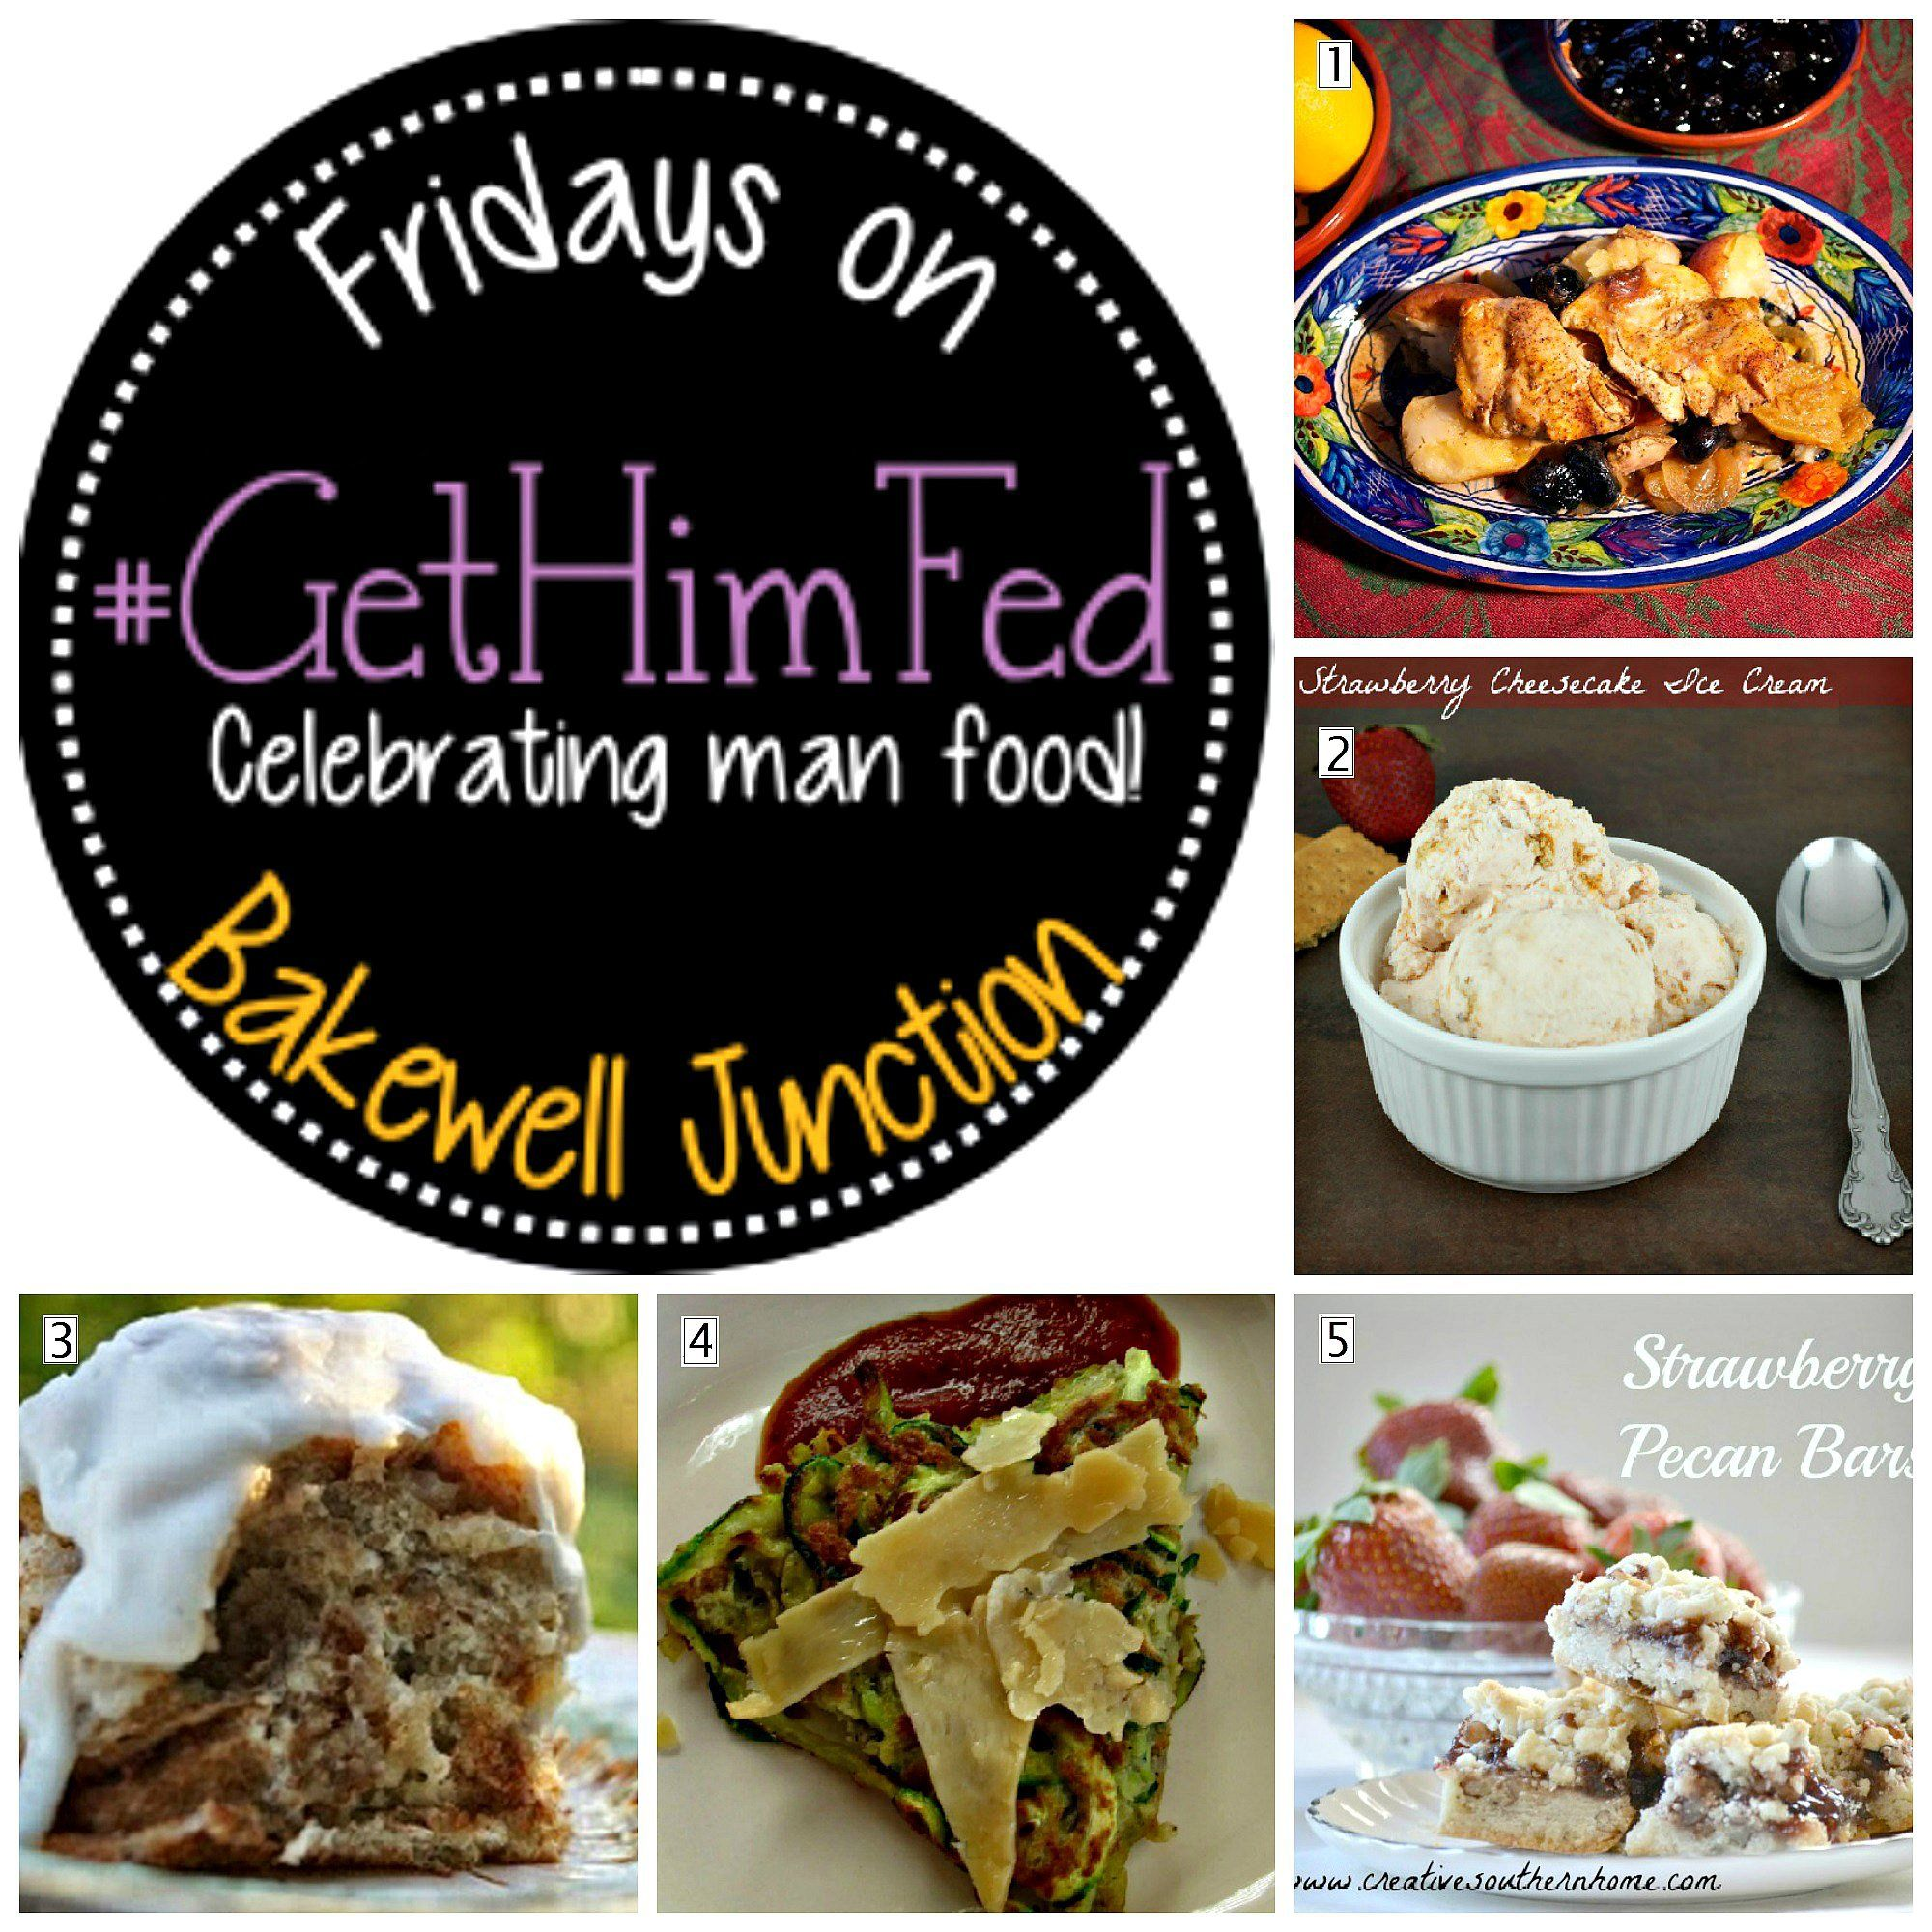 #GetHimFed No. 30 Features | Bakewell Junction Zucchini Pancake